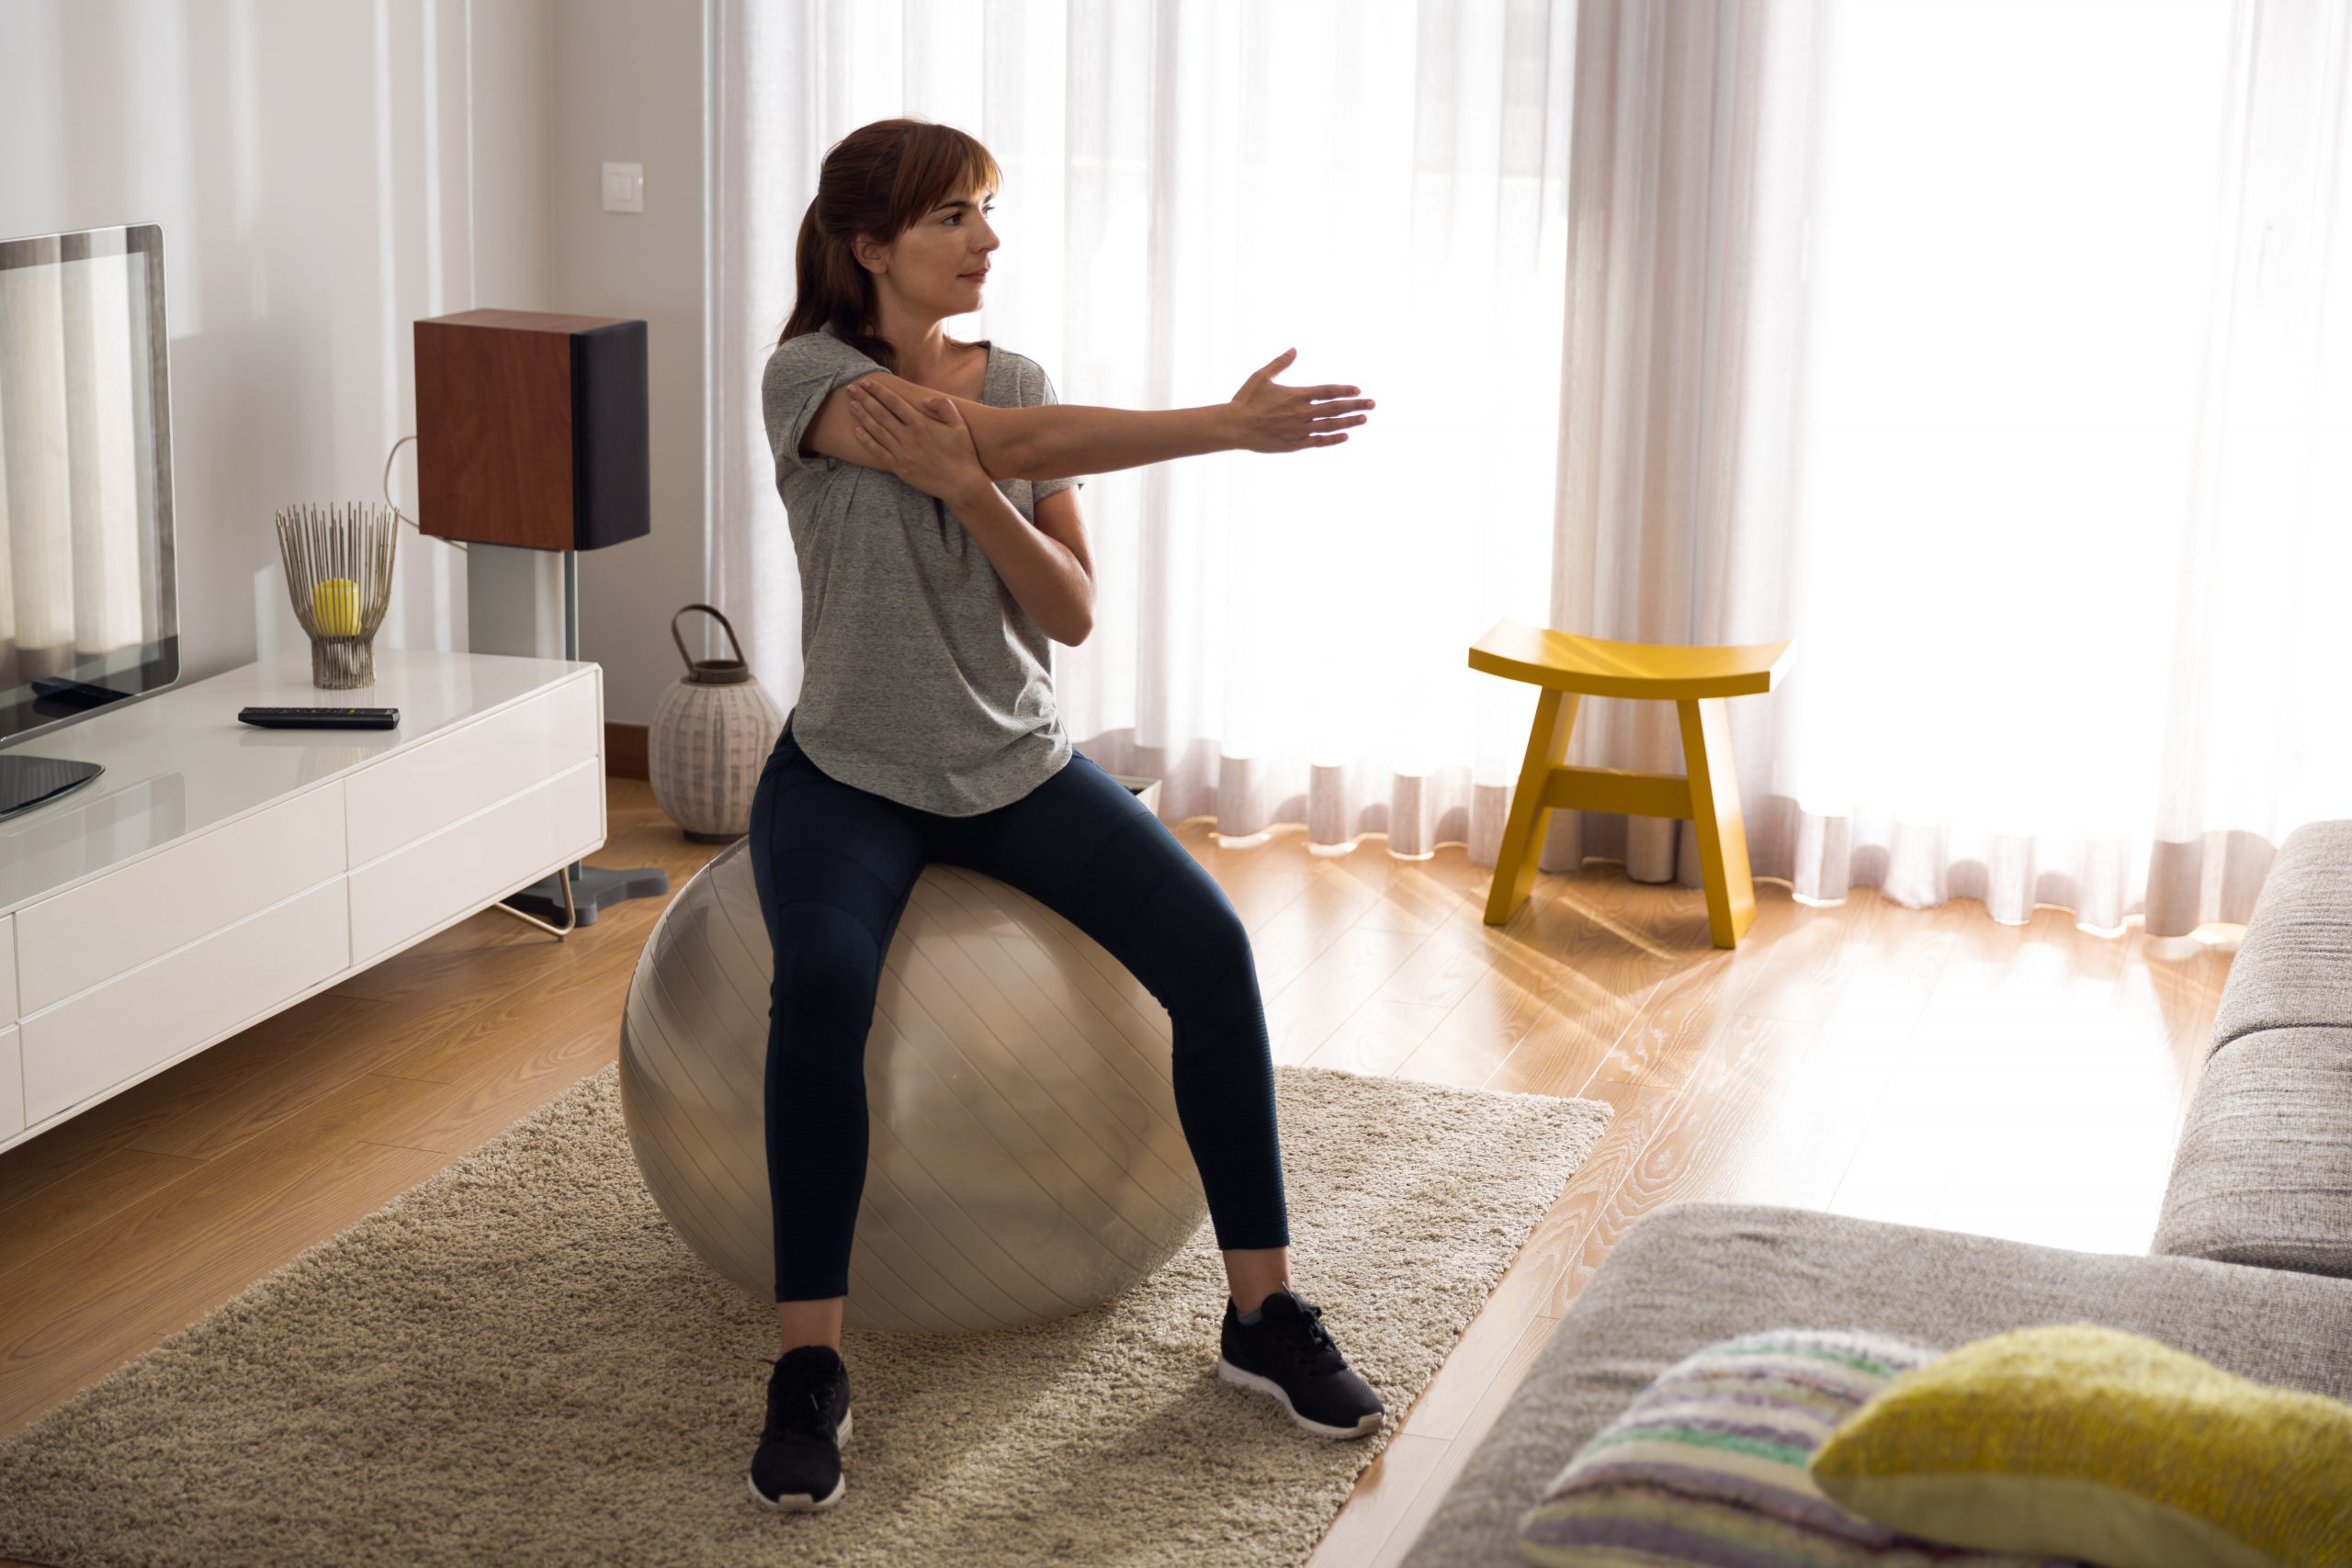 woman at home, exercising on a gym ball after reading tips on stick to your new fitness regime